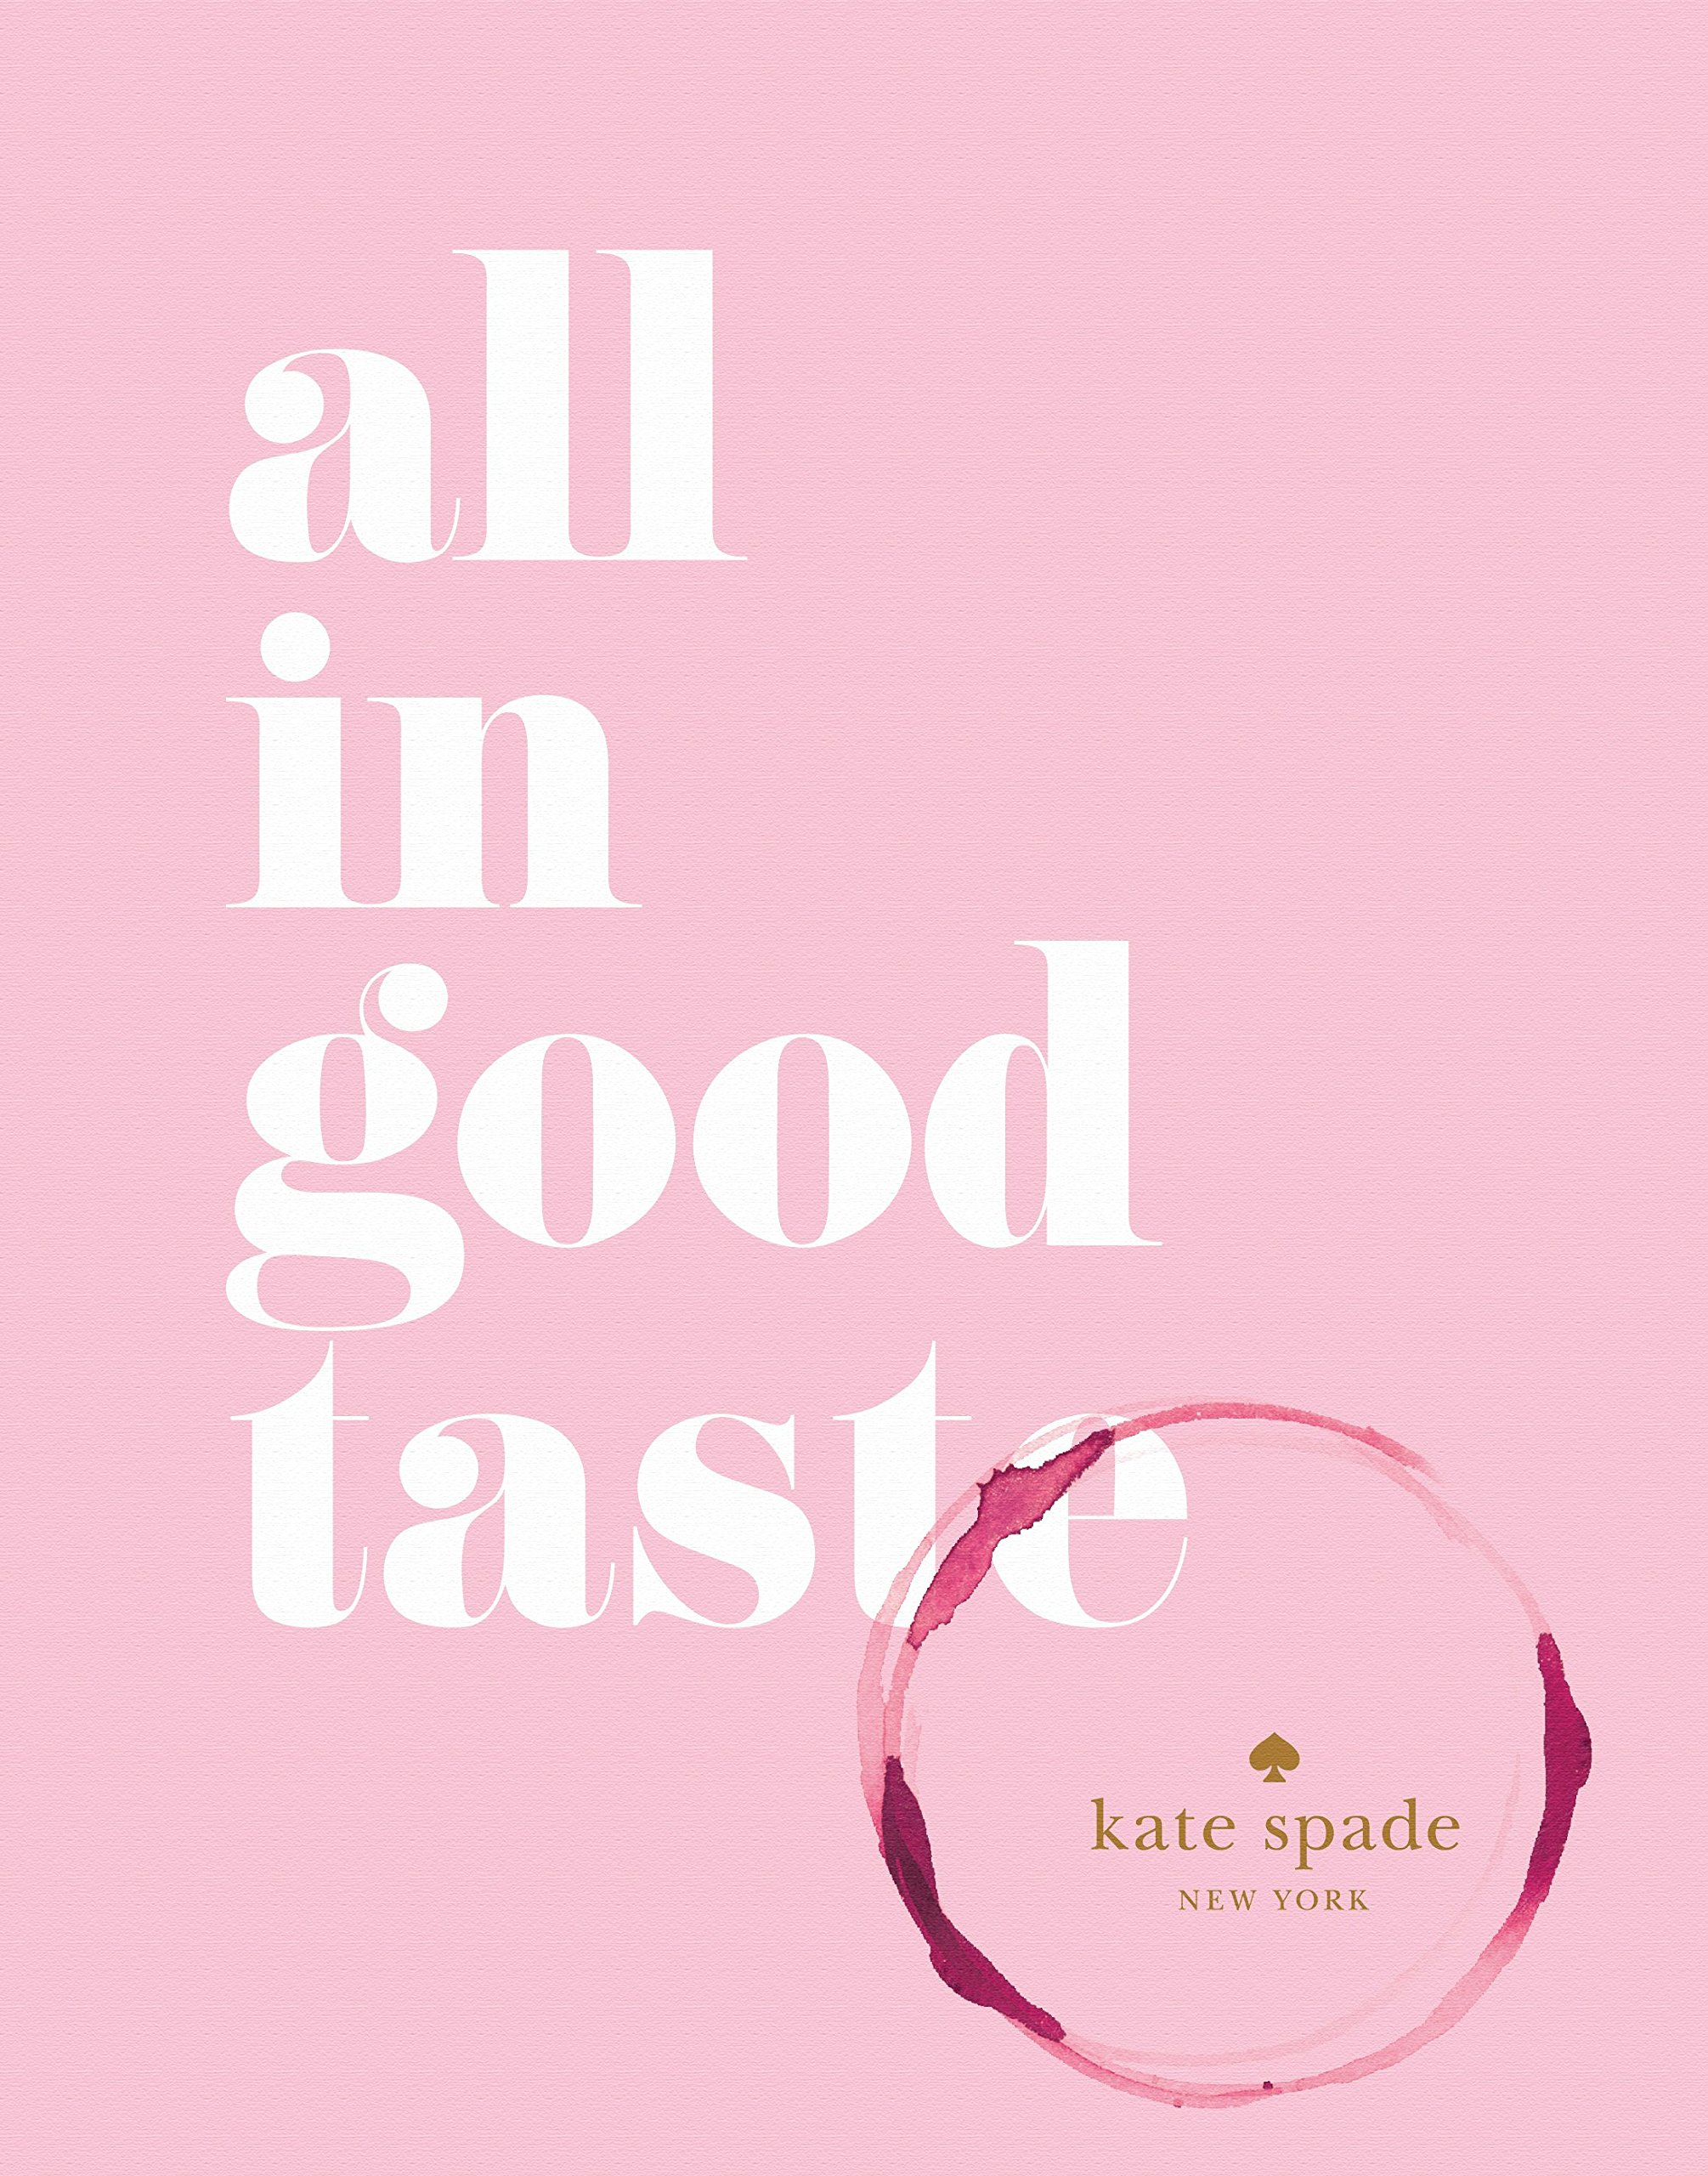 kate spade new york: all in good taste by Abrams